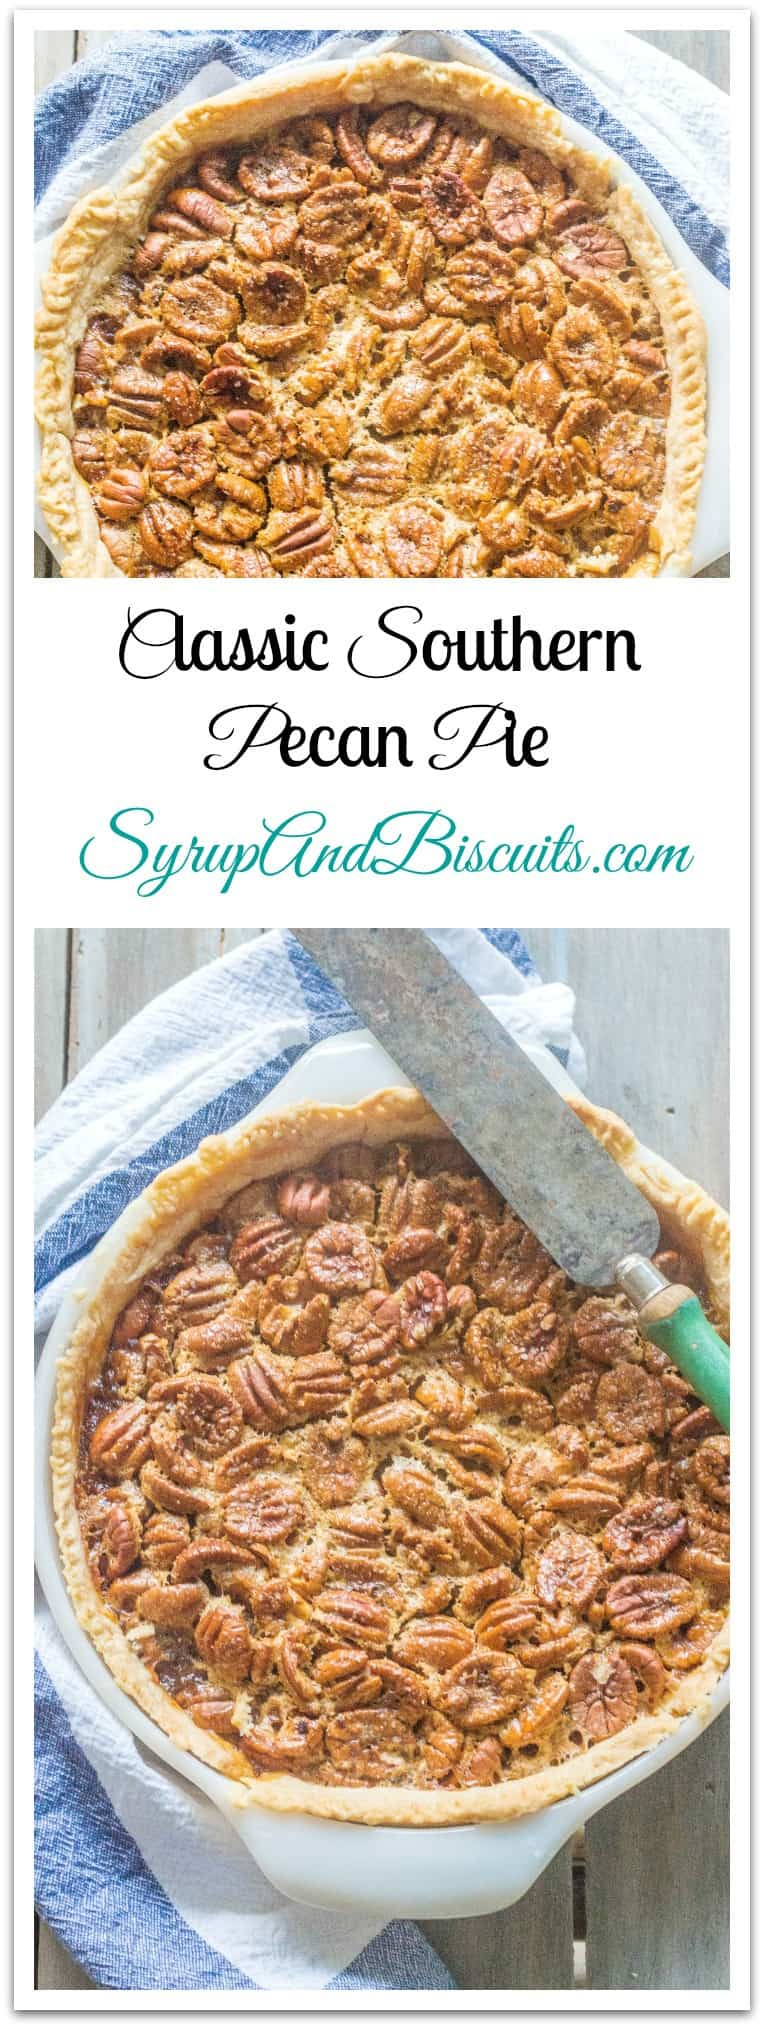 Classic Southern Pecan Pie is a favorite pie made with pecans that are baked in a syrupy filling.#PecanPie #SouthernPie